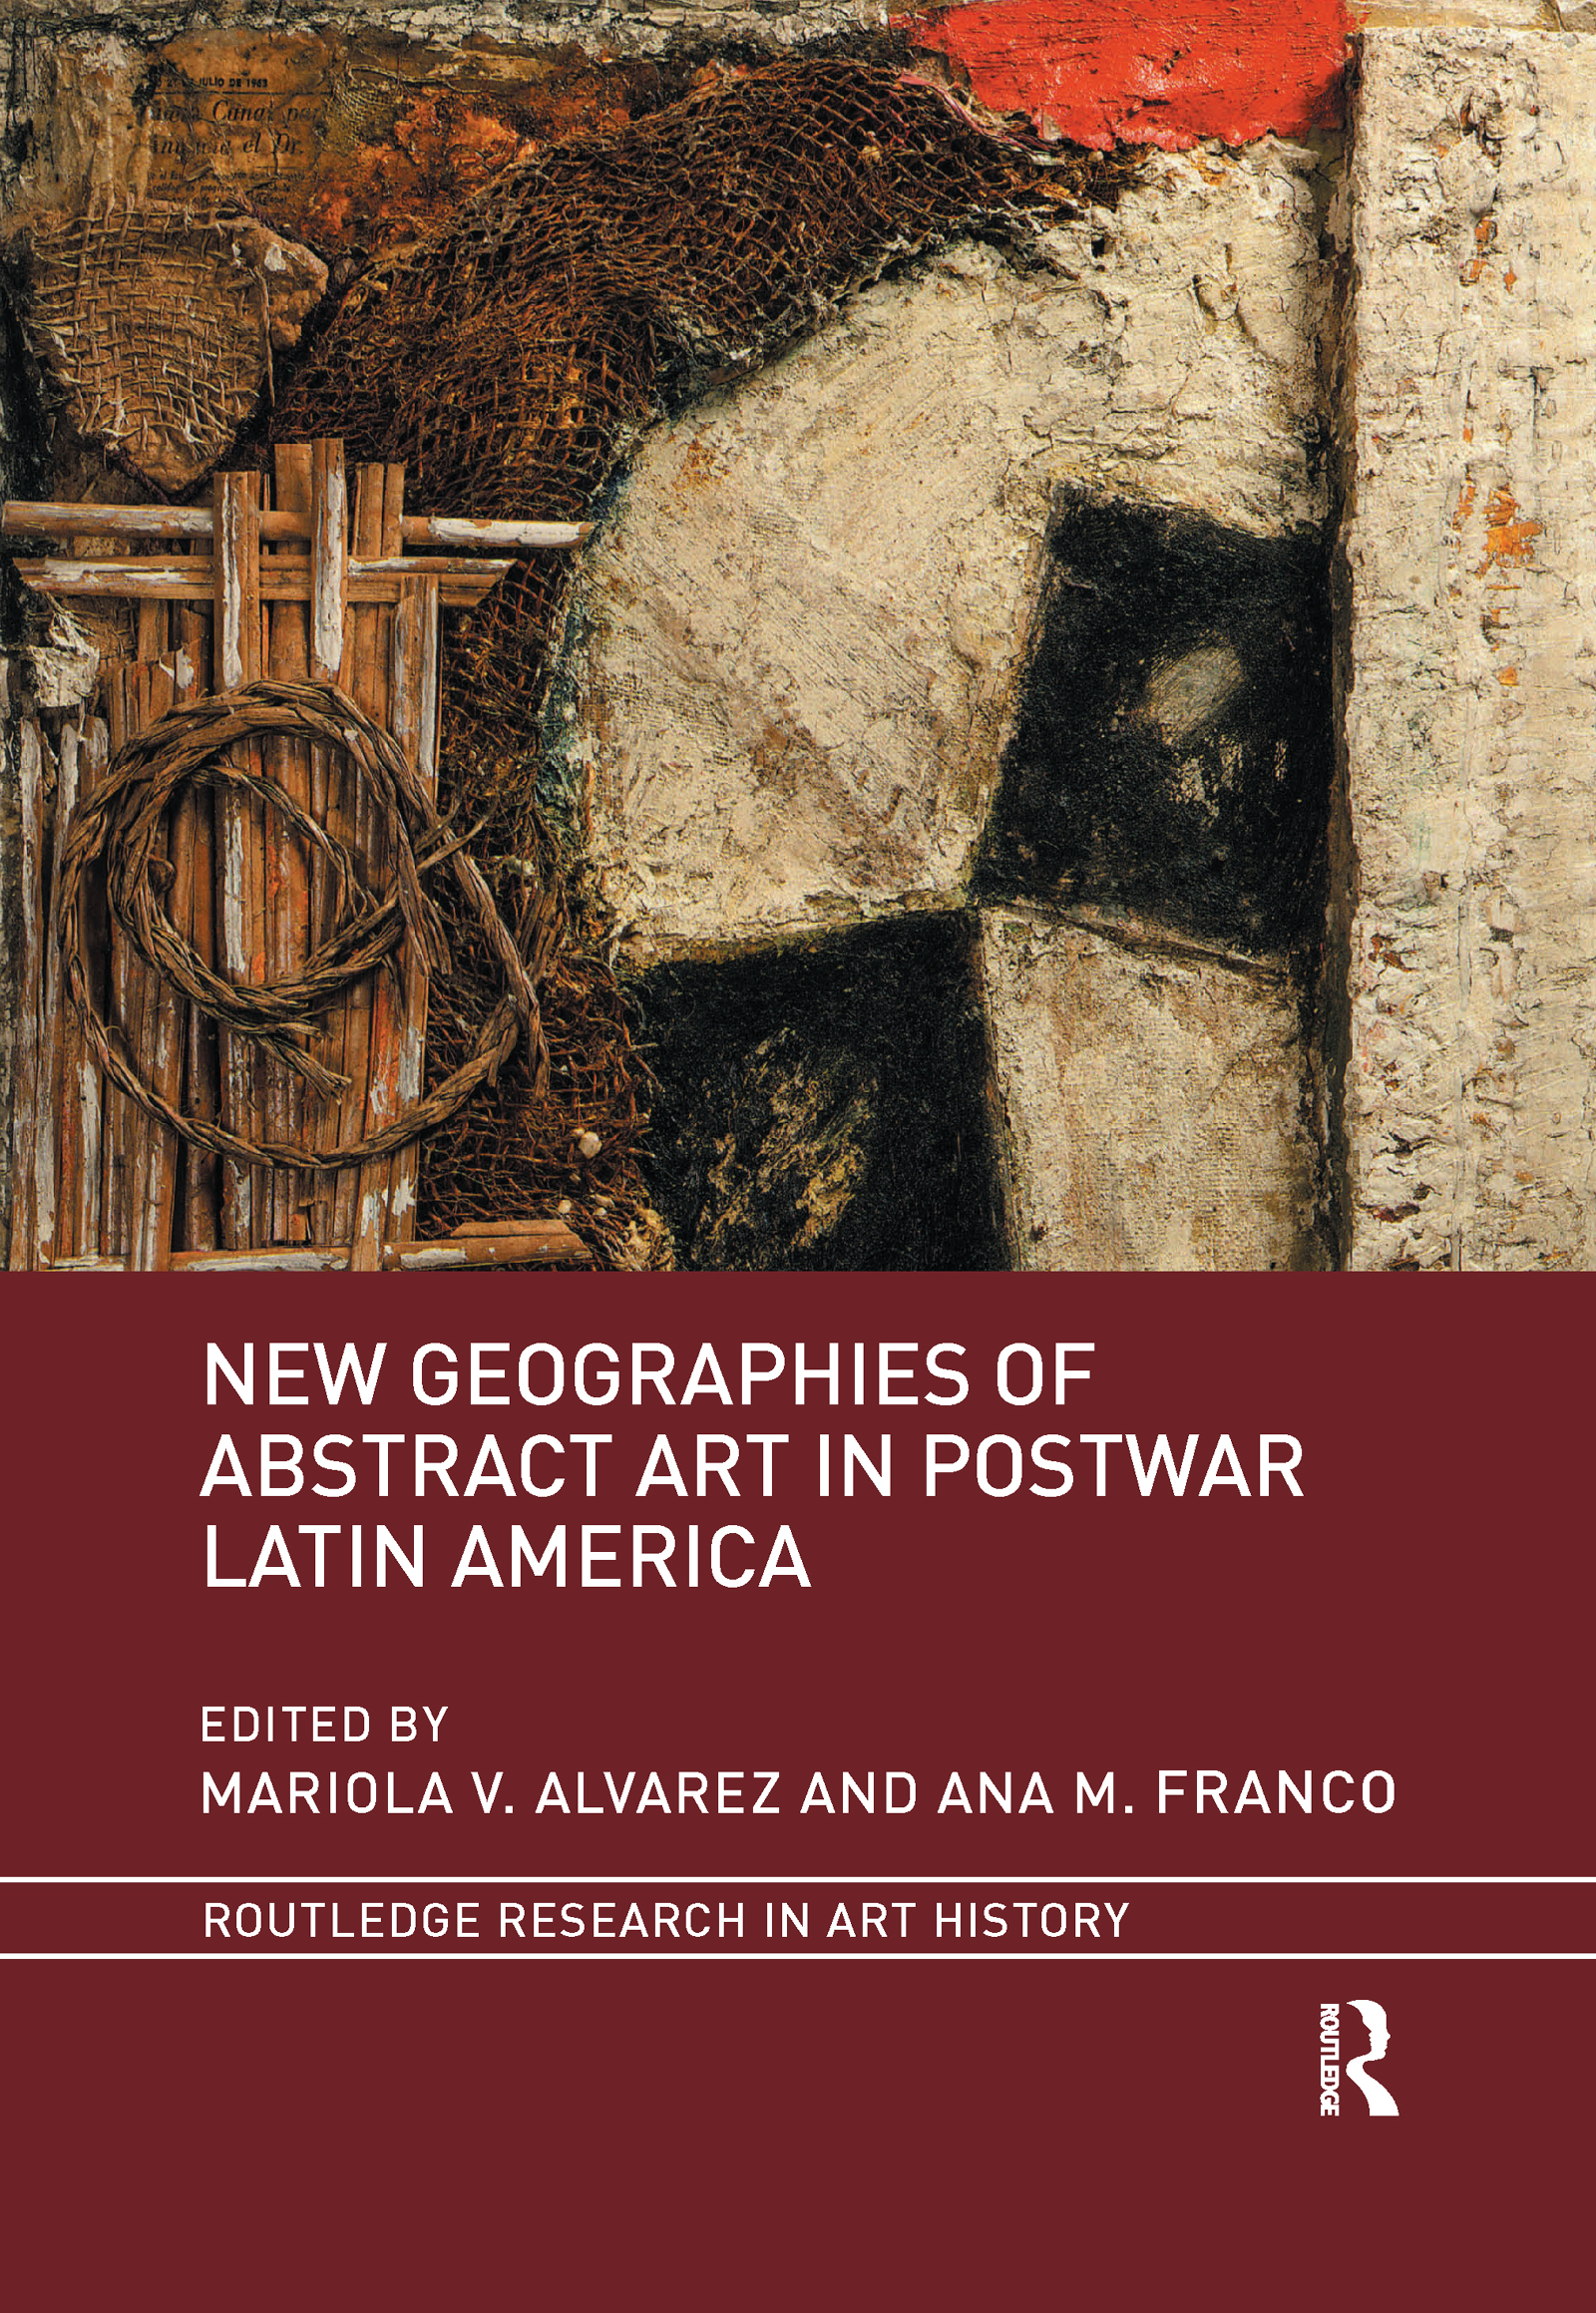 New Geographies of Abstract Art in Postwar Latin America